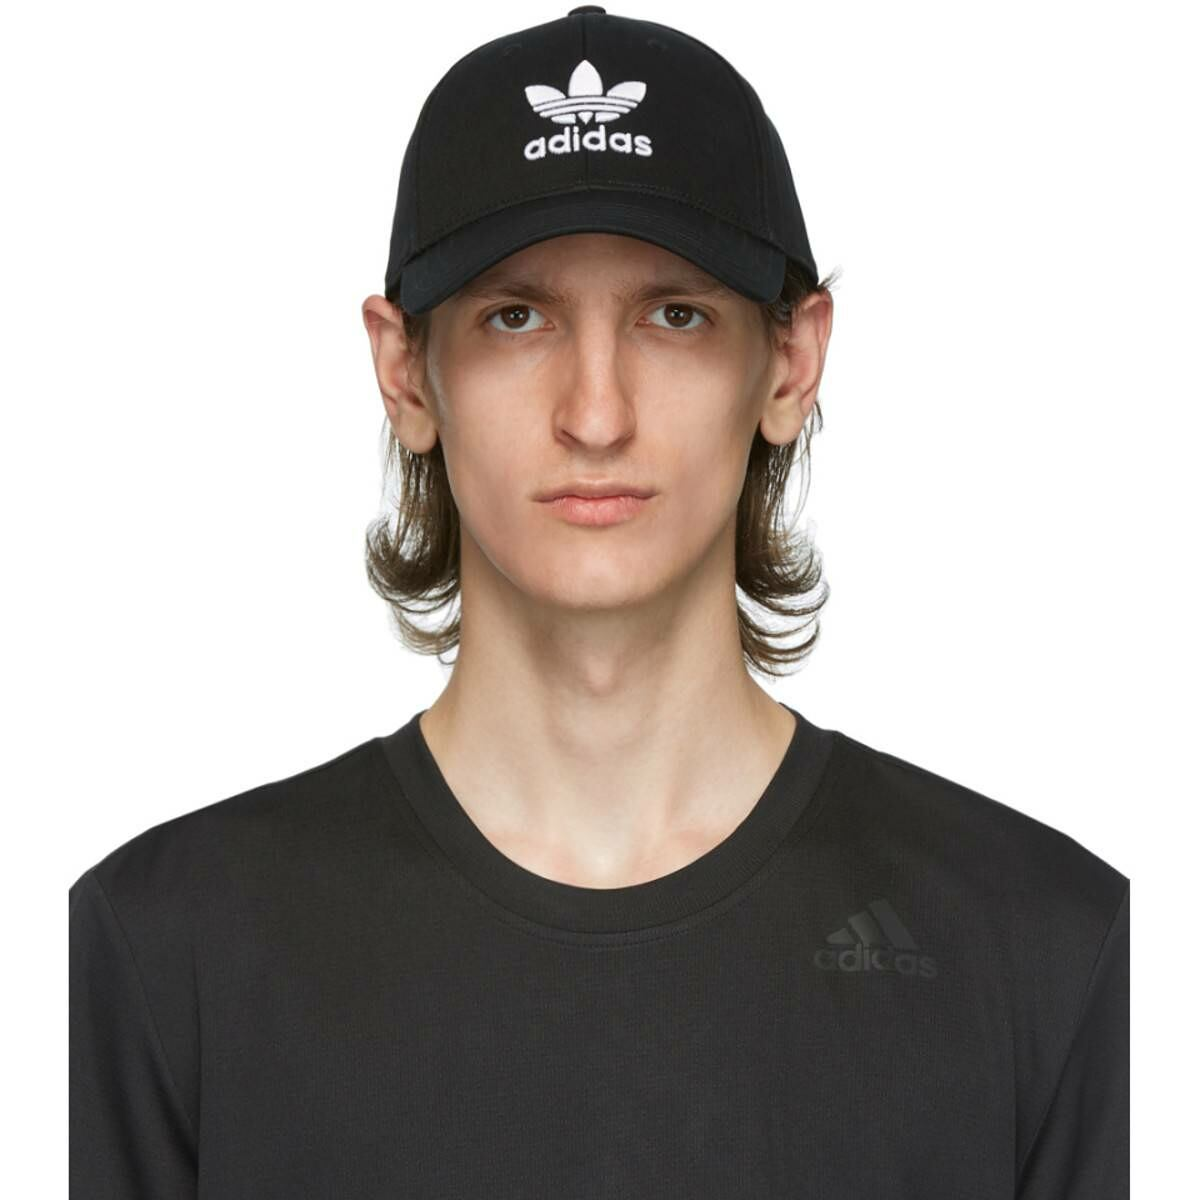 adidas Originals Black and White Trefoil Cap Ssense USA MEN Men ACCESSORIES Mens CAPS